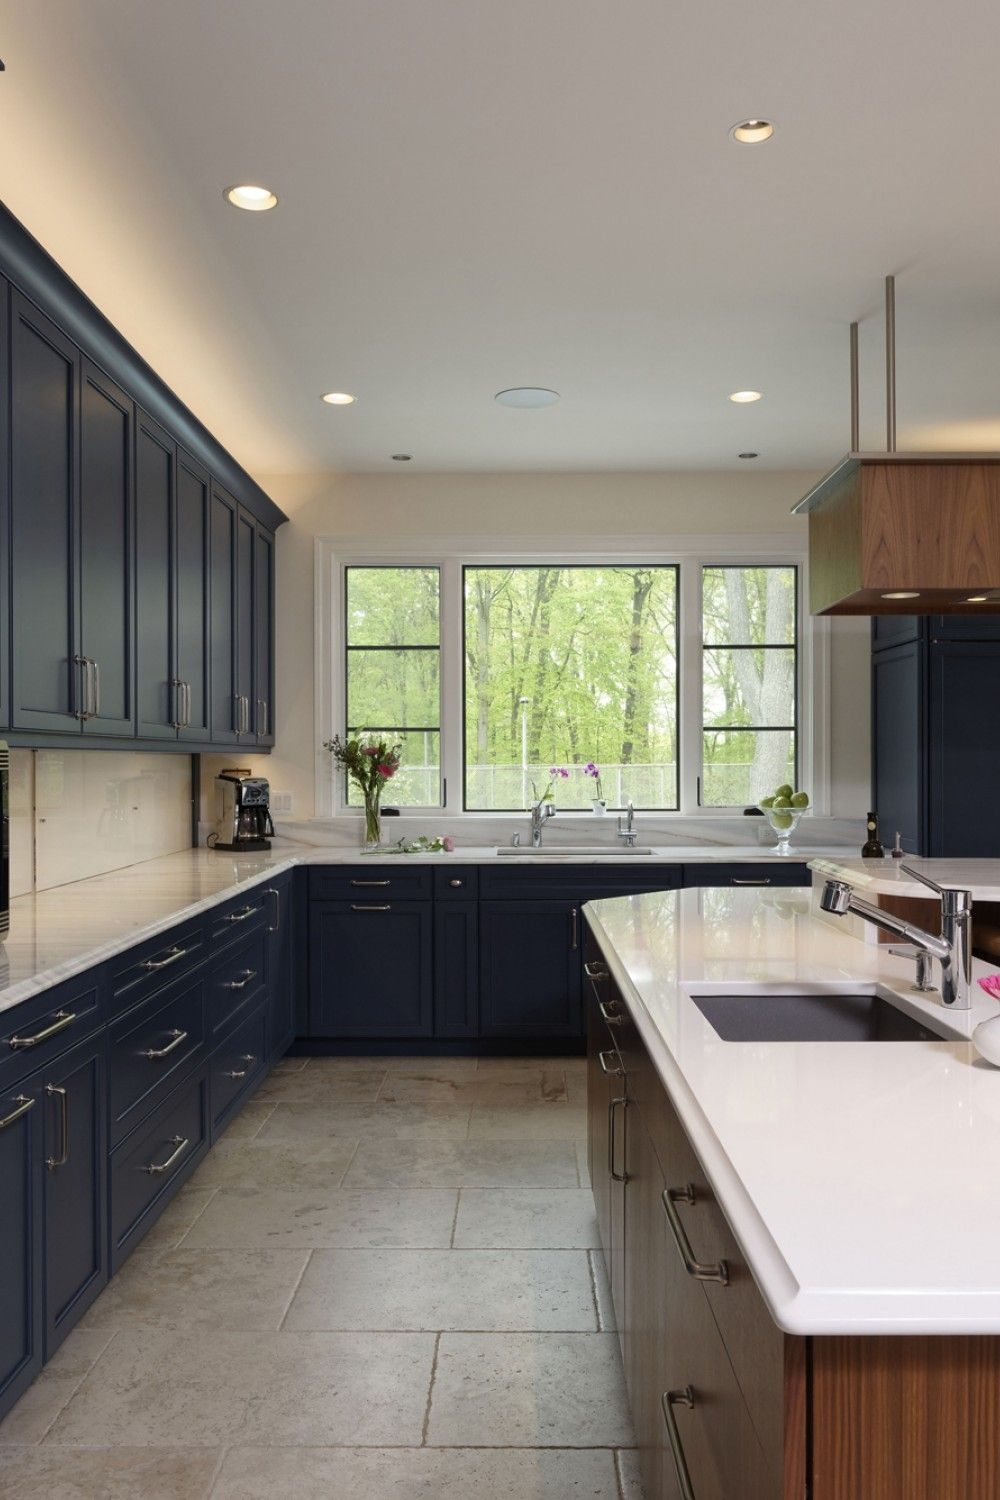 61 luxury creative color ideas for your next kitchen reno